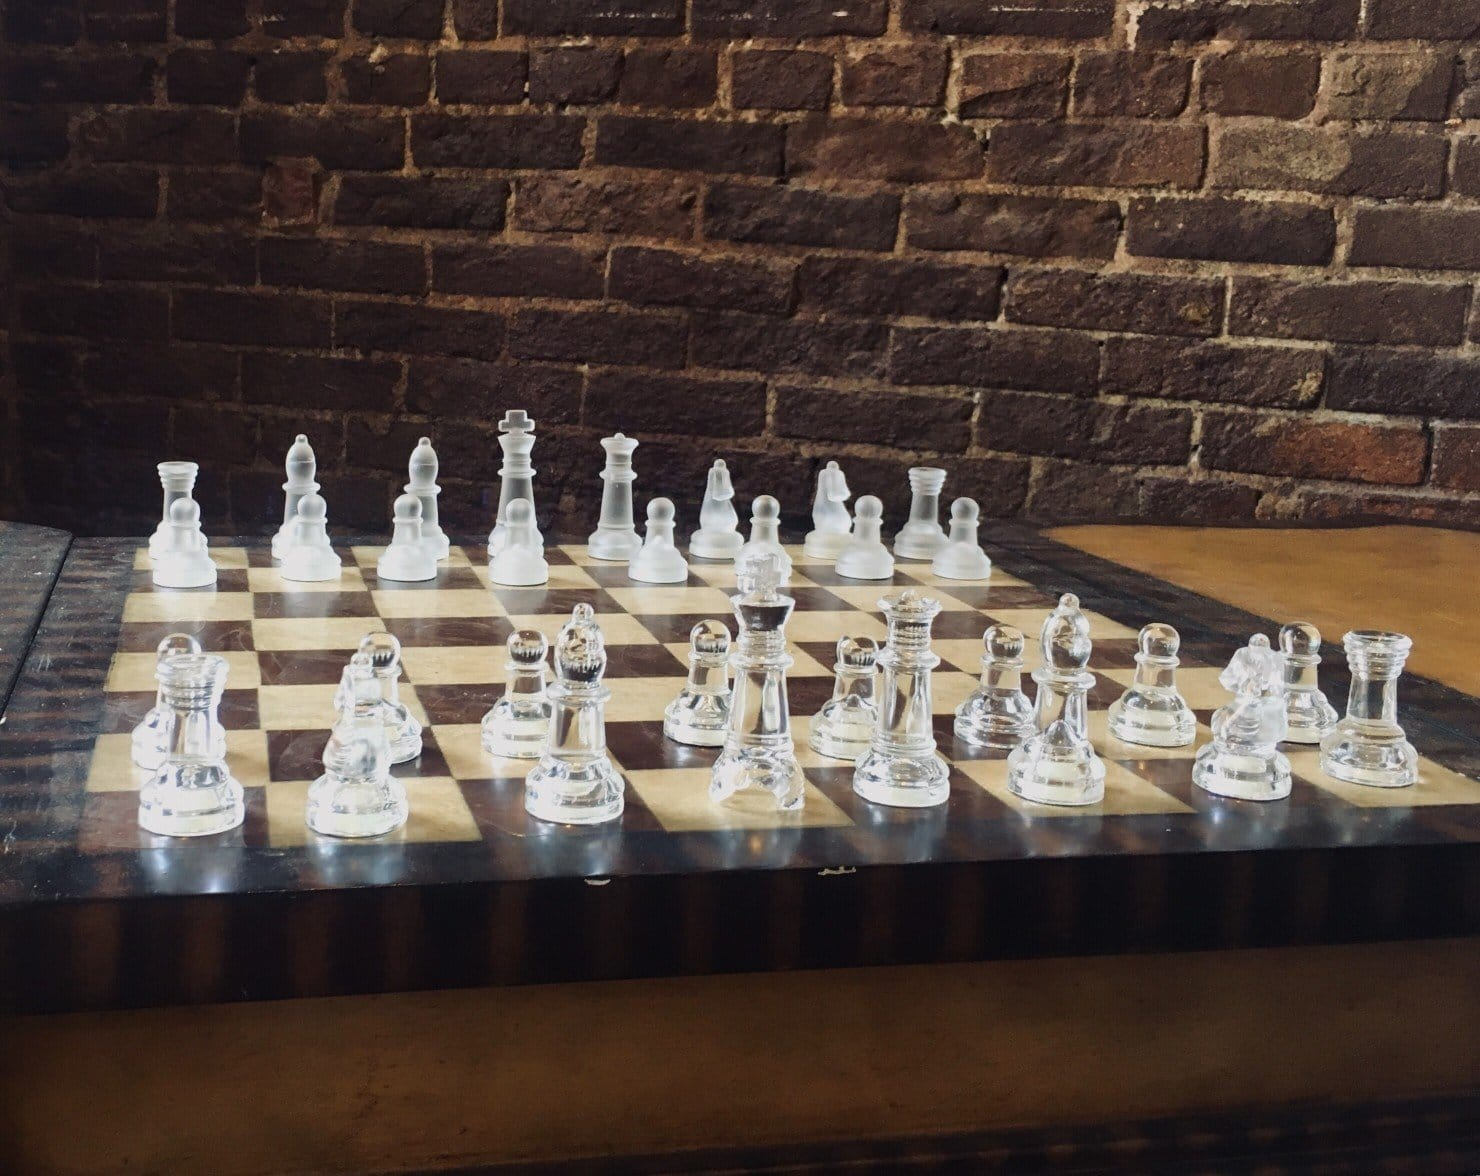 Best Chess Sets 10 Excellent Choices For Home Or Travel